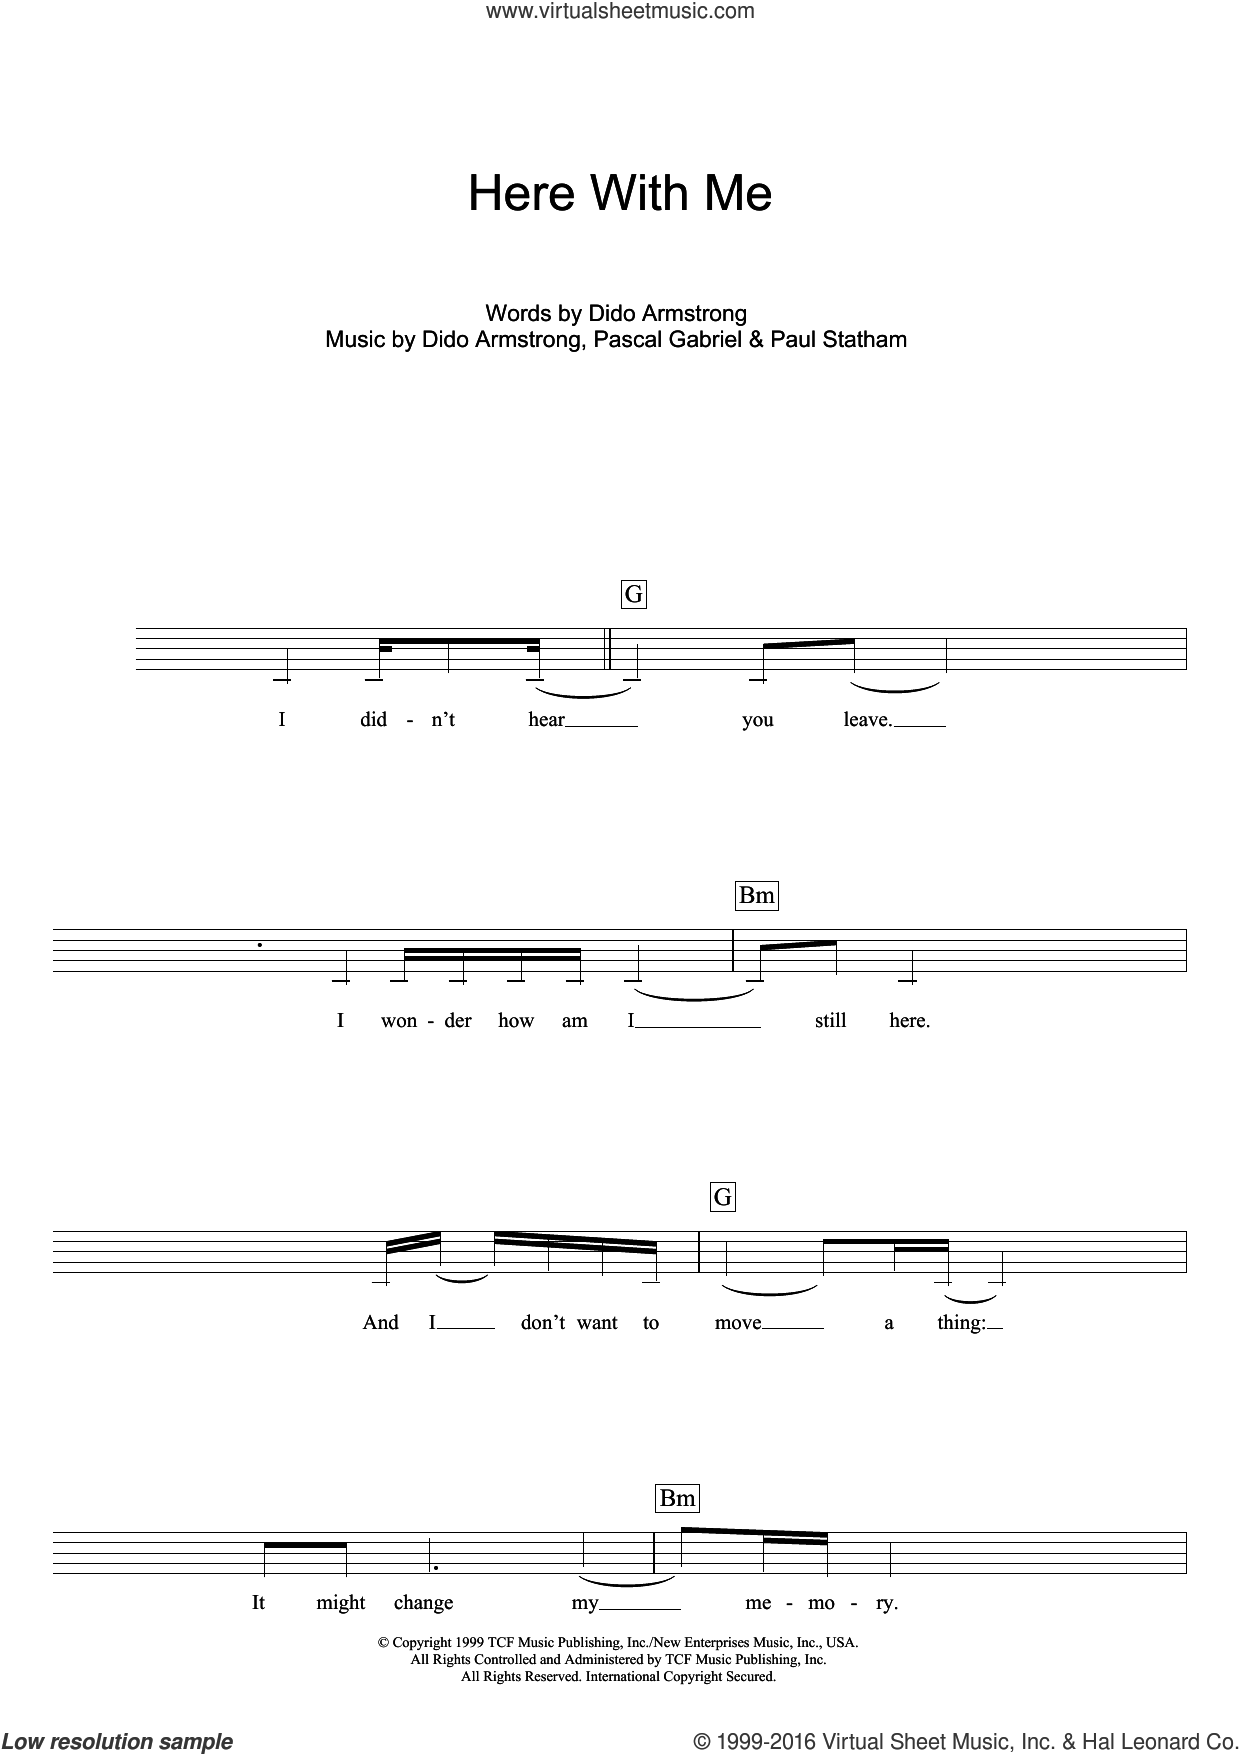 Here With Me (Theme from Roswell) sheet music for voice and other instruments (fake book) by Dido Armstrong, Pascal Gabriel and Paul Statham, intermediate skill level